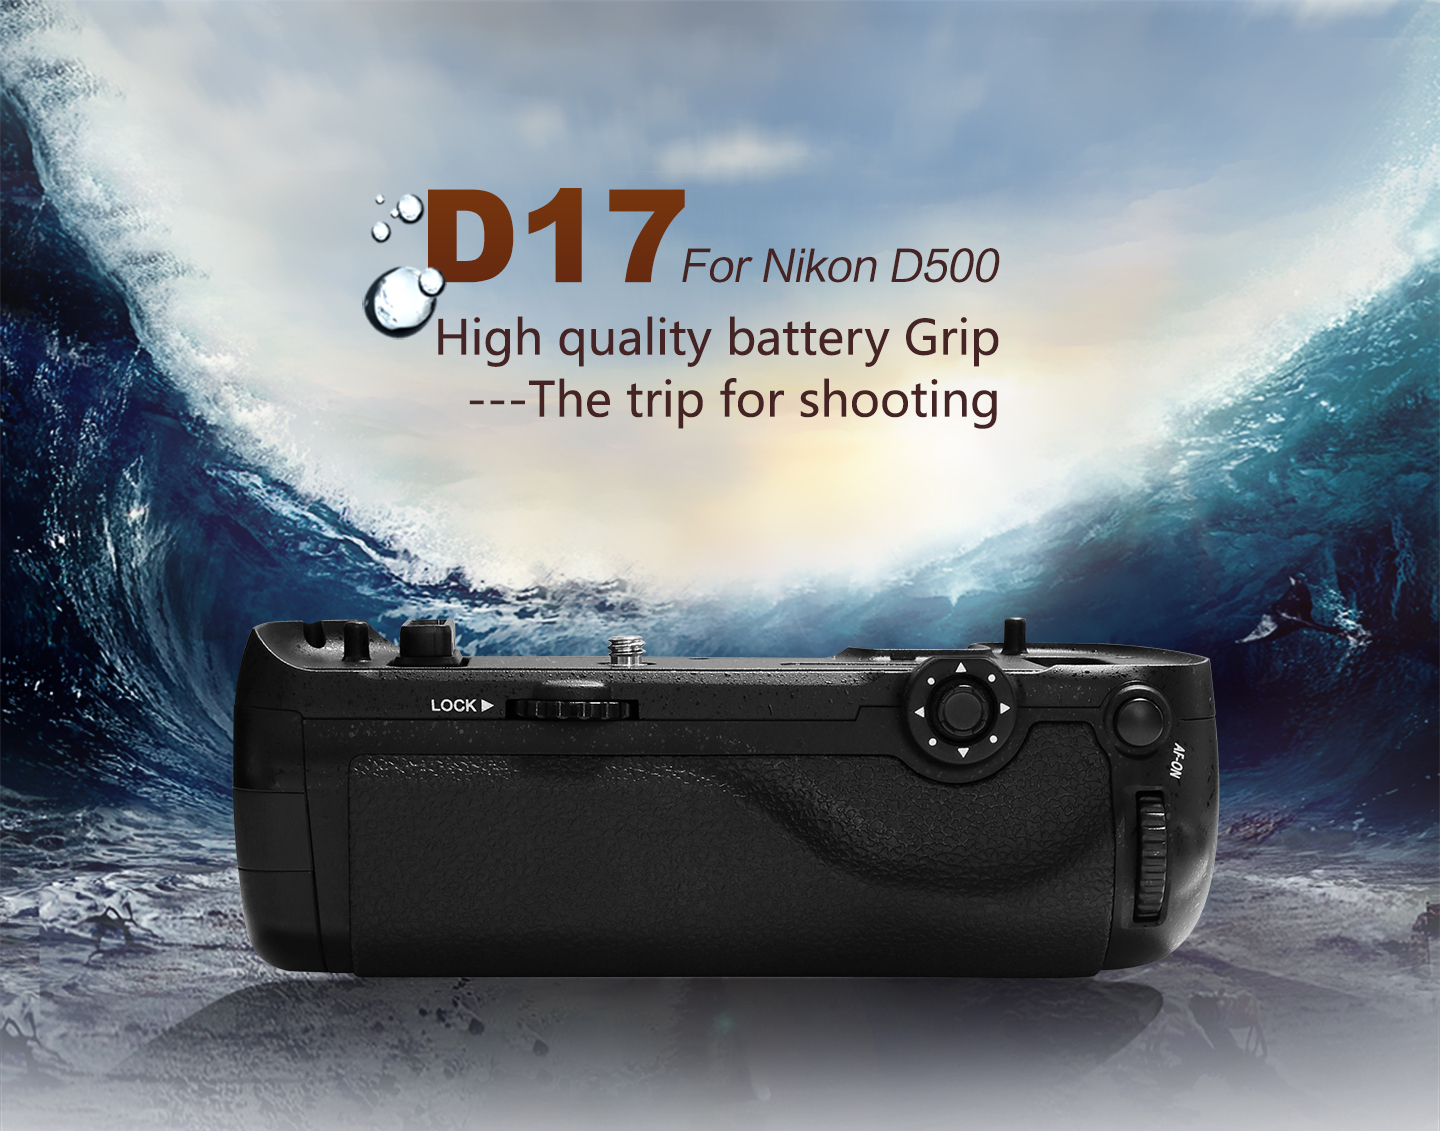 D17 For Nikon D500 High quality battery Grip